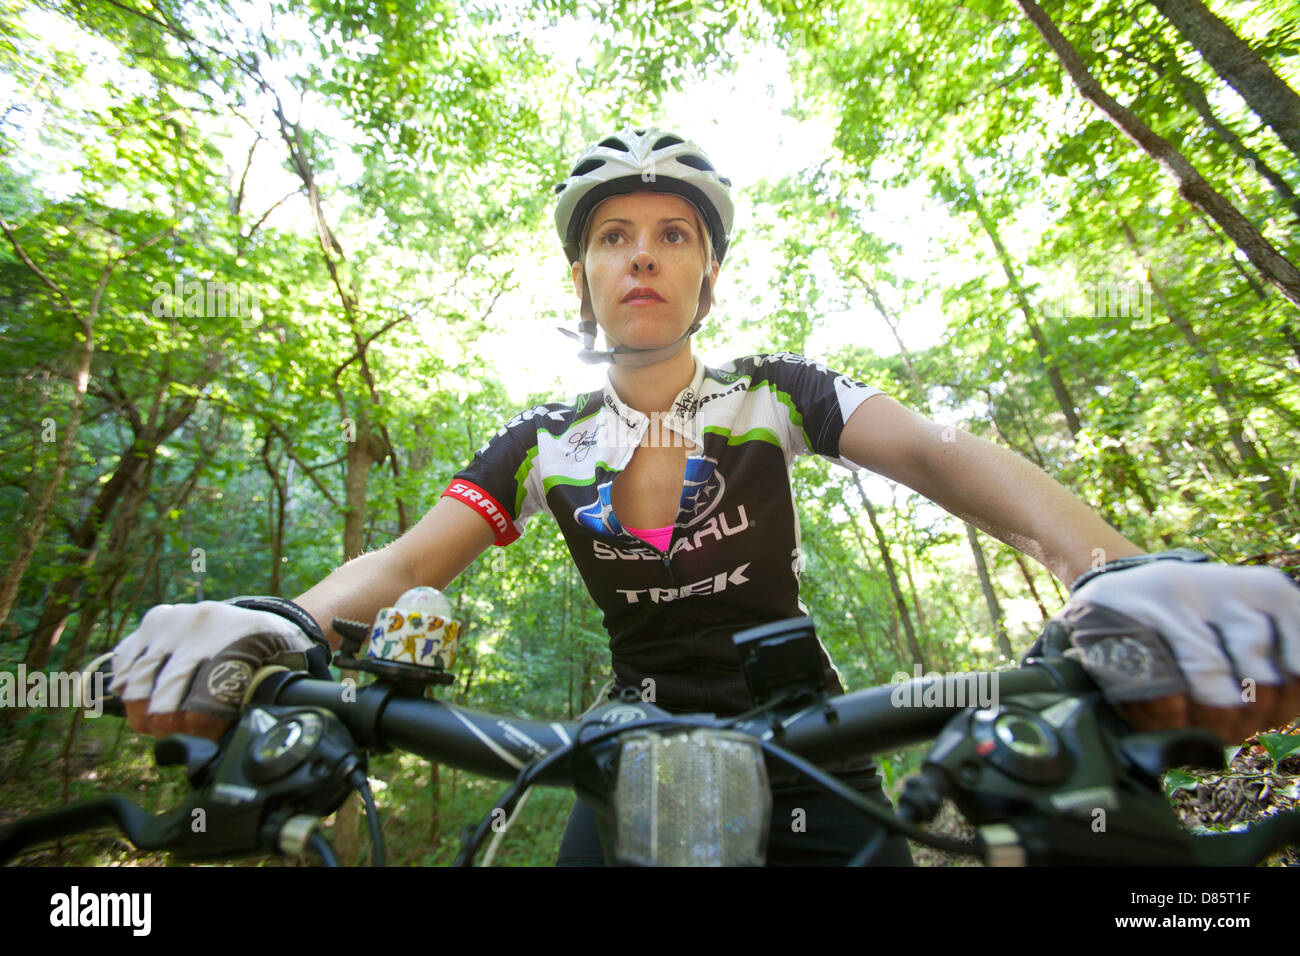 Woman riding a mountain bike on a forest trail system in Bella Vista, Arkansas. - Stock Image